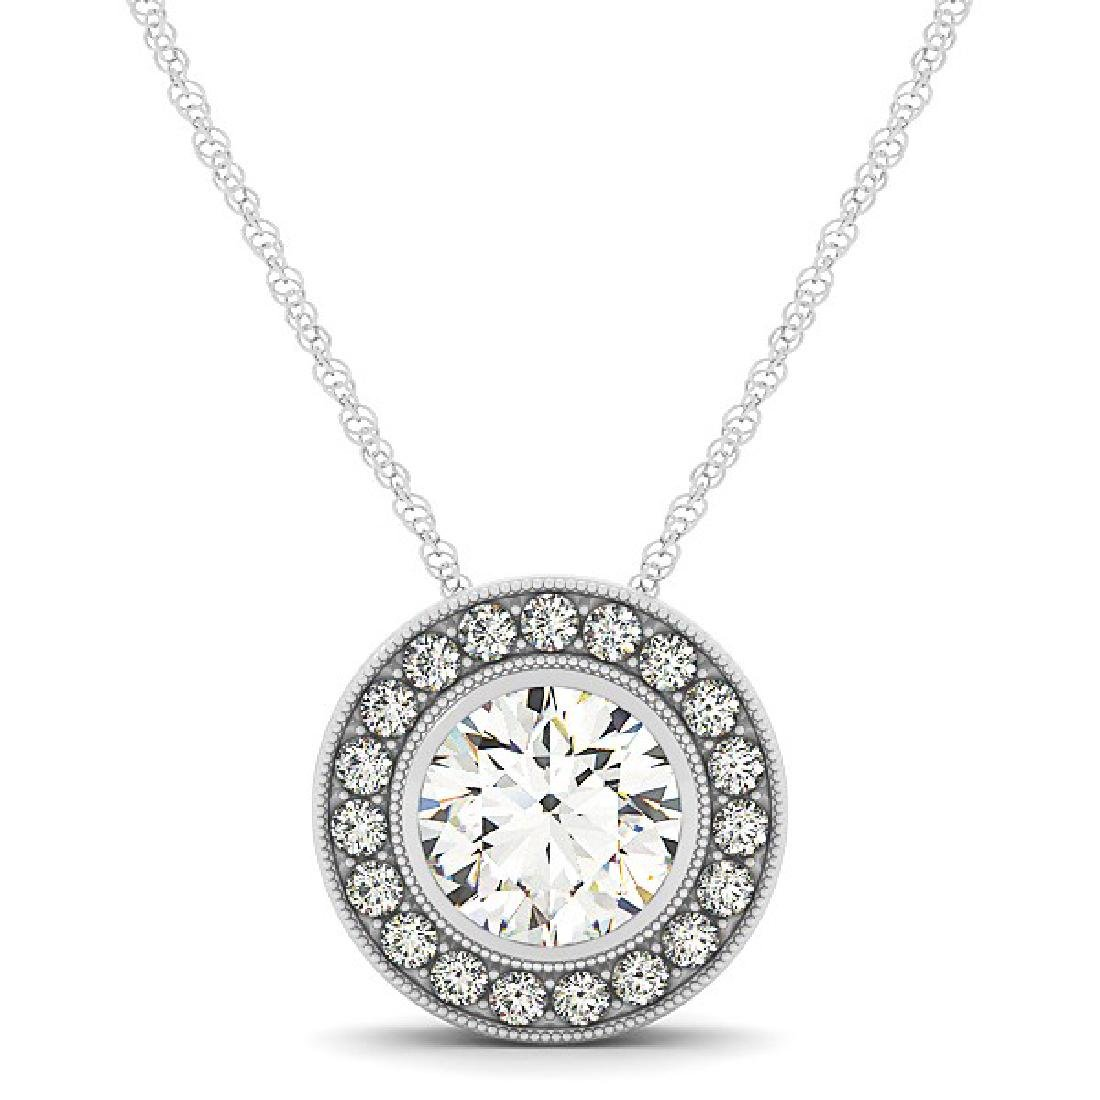 2.25 CTW Certified SI Diamond Solitaire Necklace 14K - 2